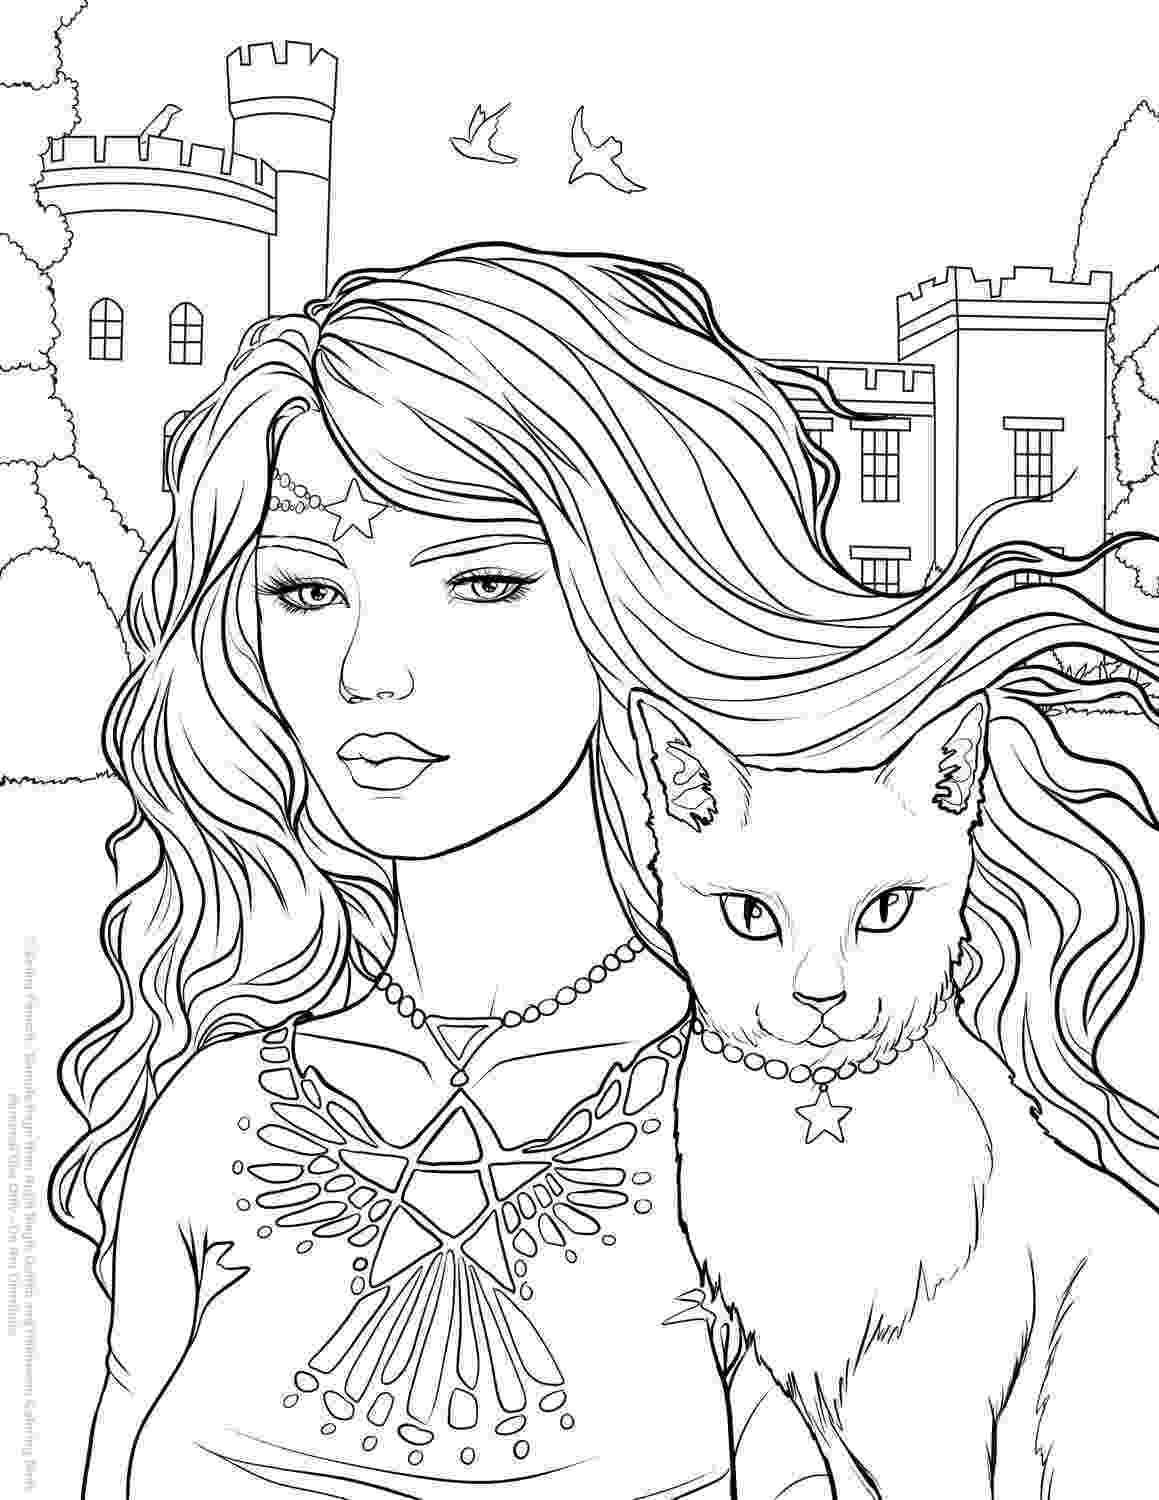 coloring pages fantasy final fantasy coloring pages anti stress colouring pages fantasy coloring pages